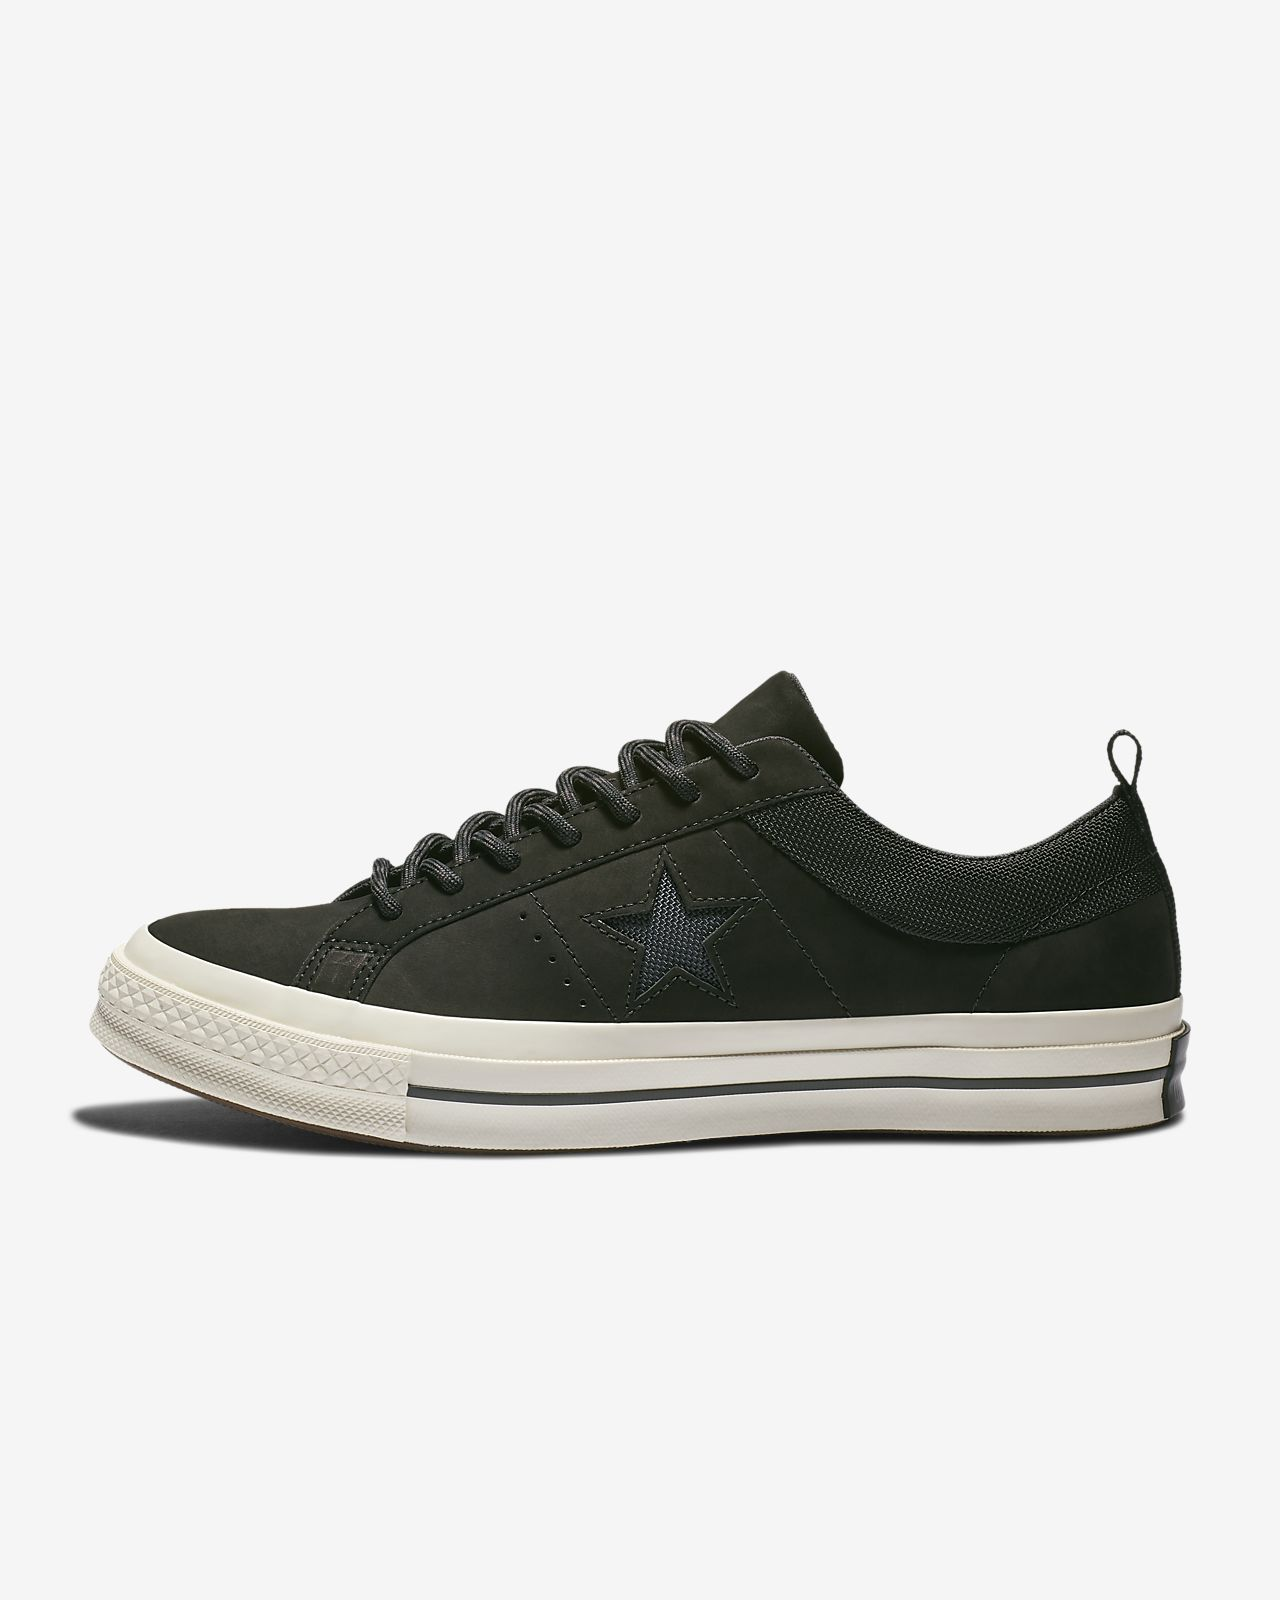 Converse One Star Sierra Leather Low Top  Unisex Shoe